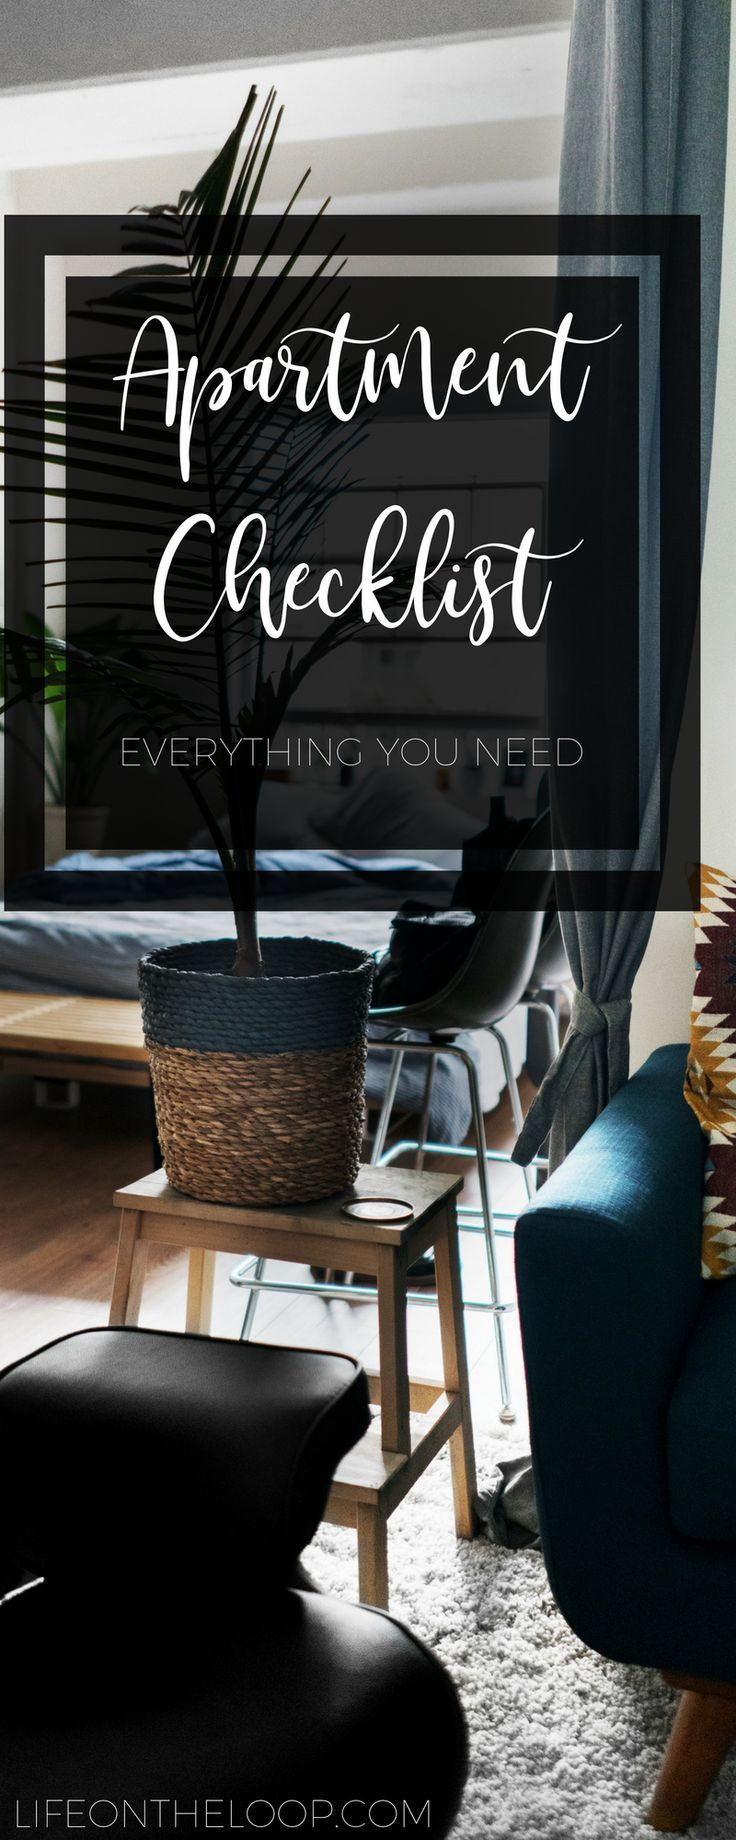 Furnishing Your First Apartment Apartment Checklist First Apartment Apartment Decor